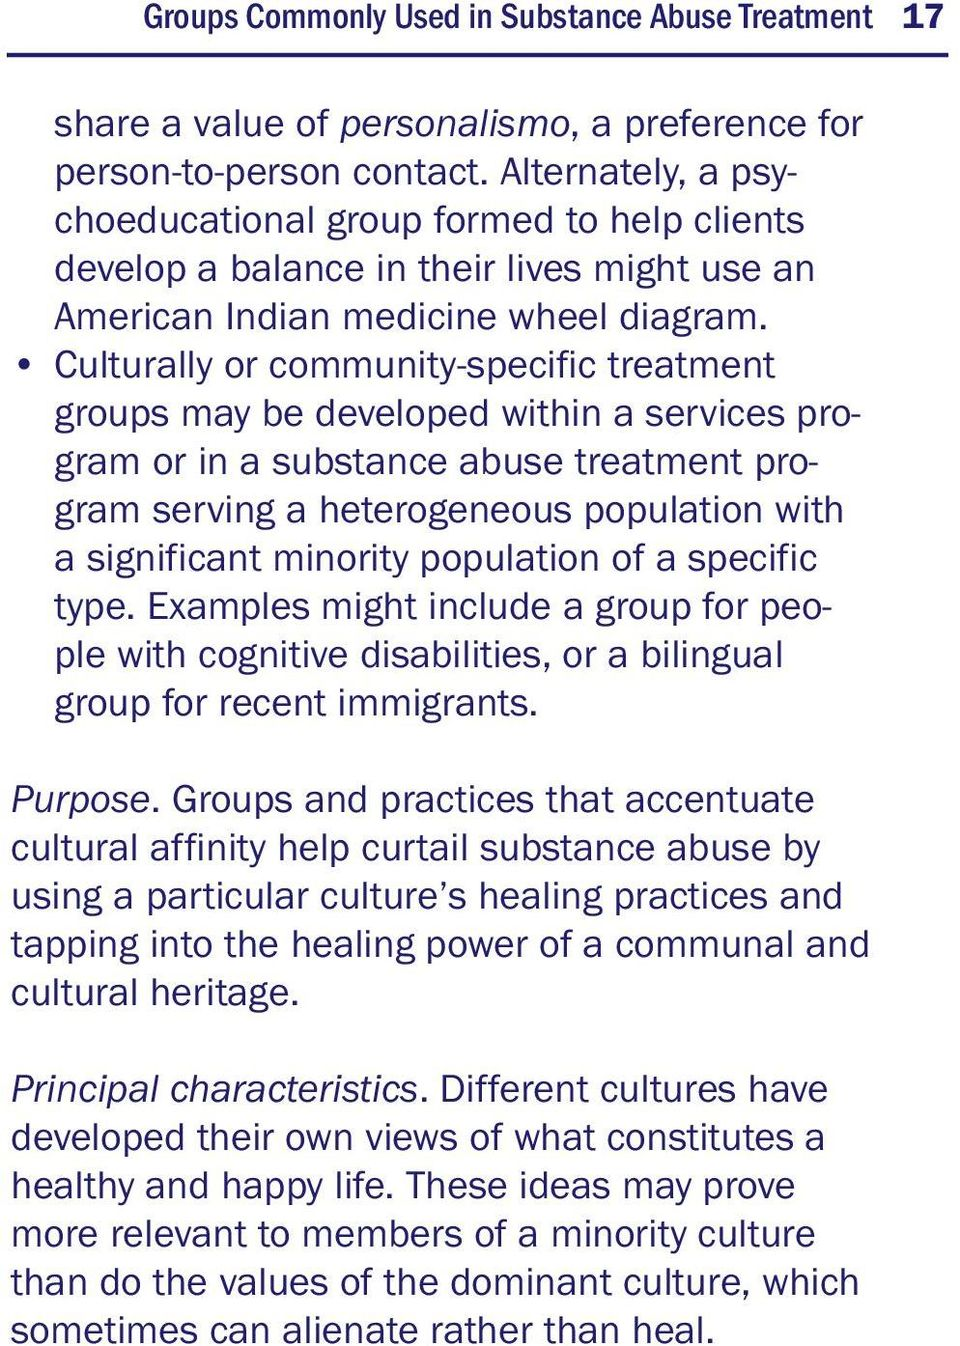 Culturally or community-specific treatment groups may be developed within a services program or in a substance abuse treatment program serving a heterogeneous population with a significant minority